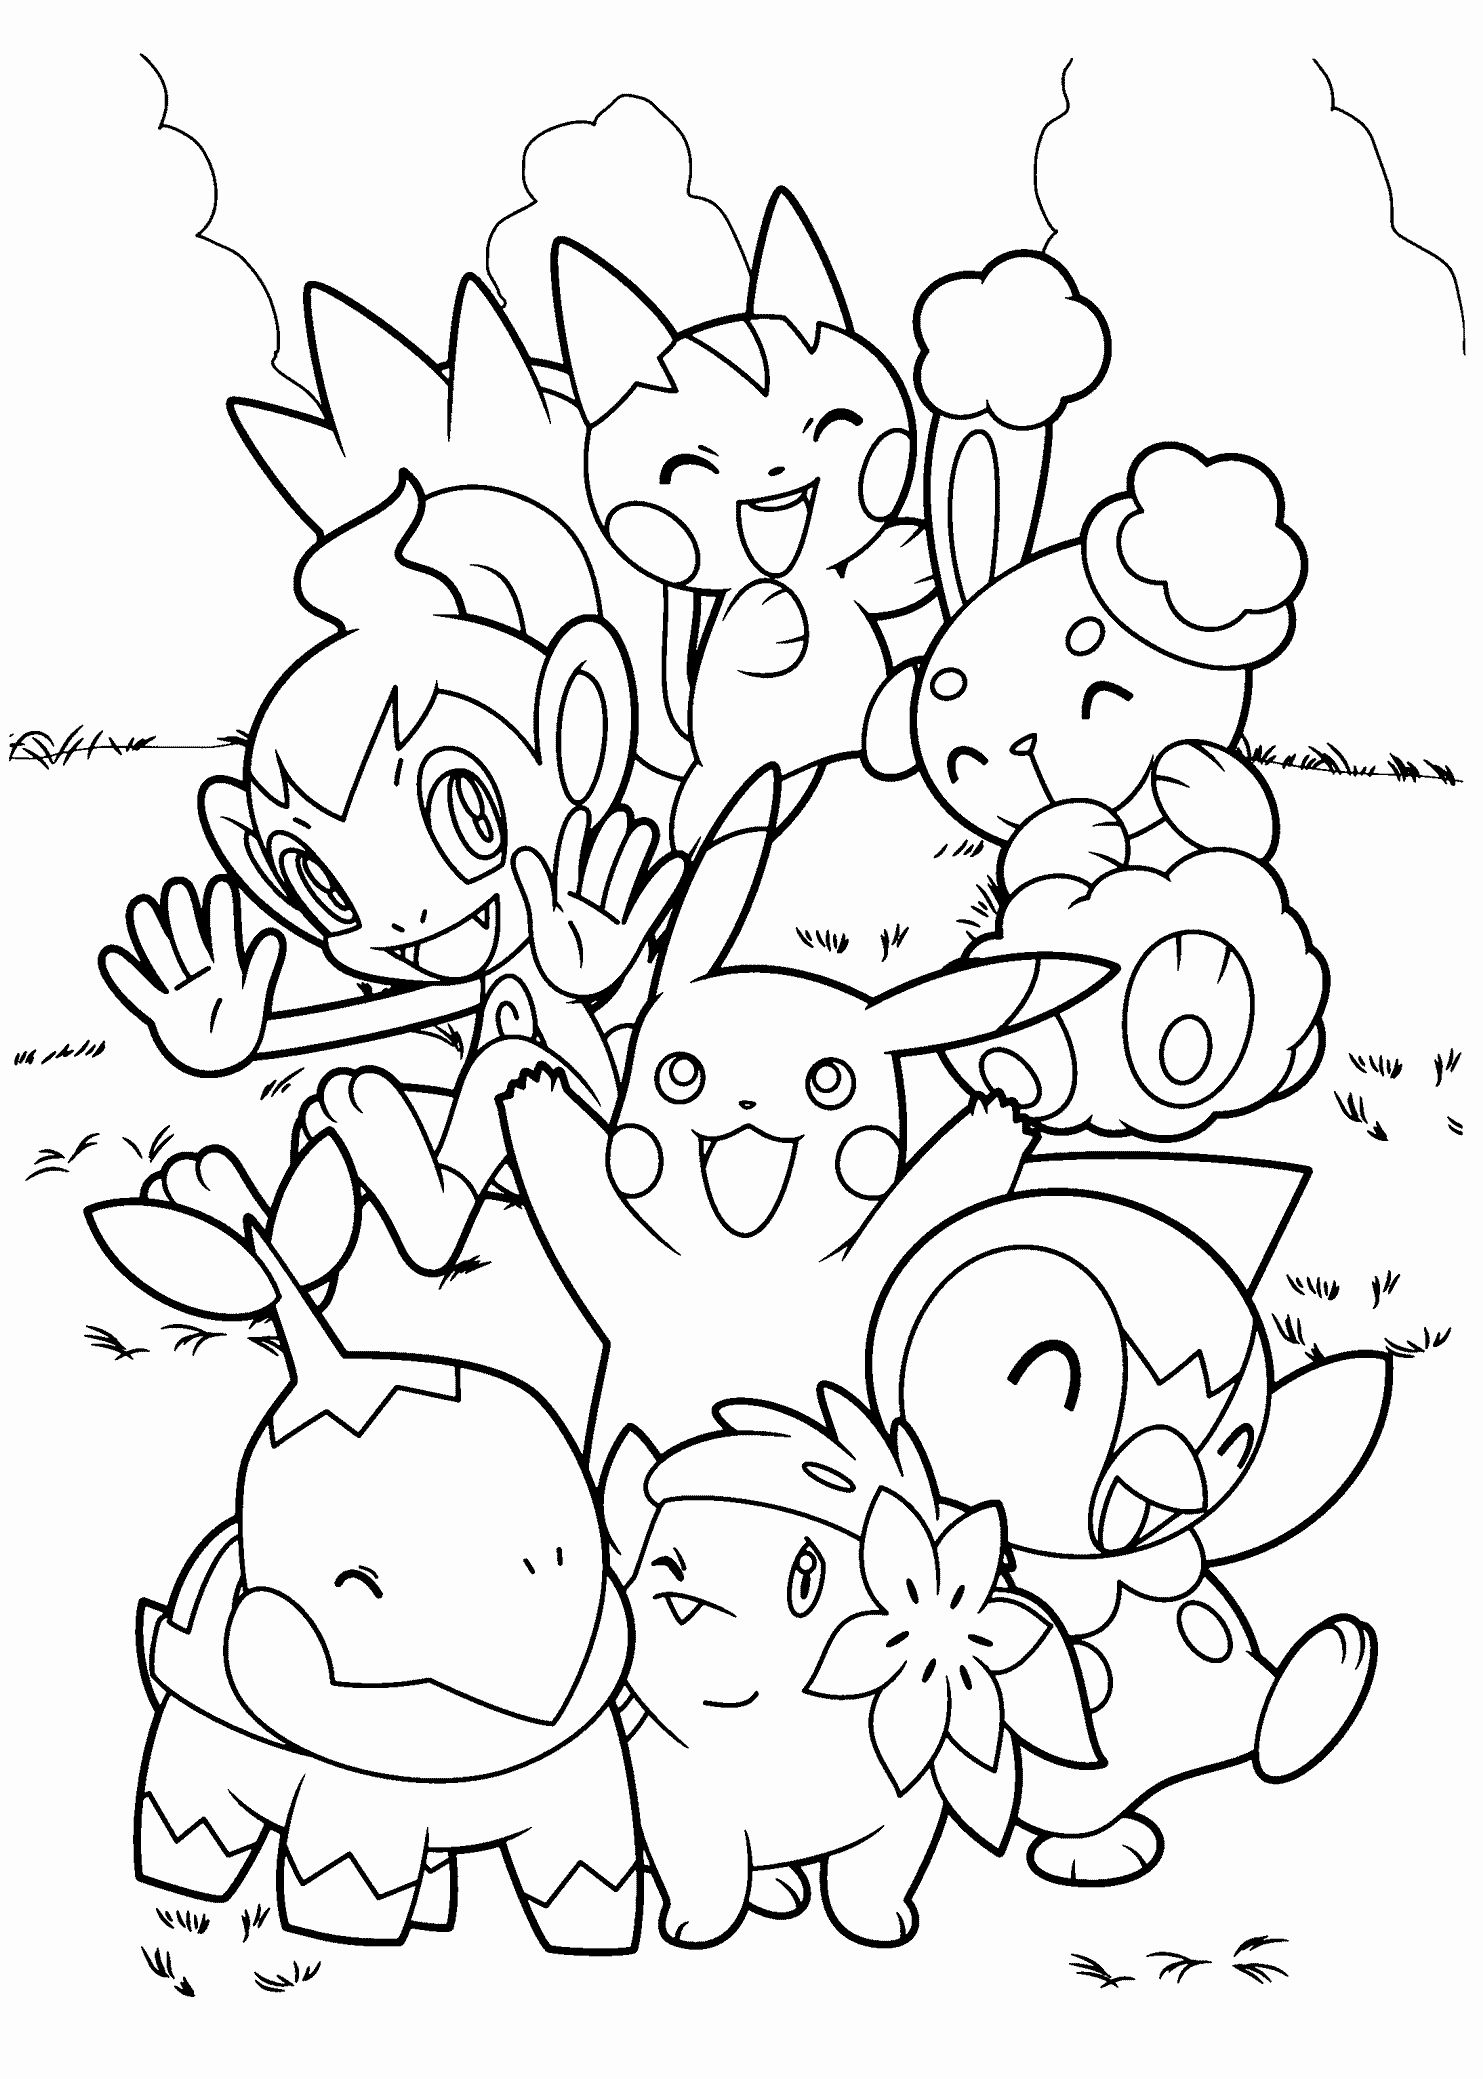 November Coloring Pages Printable Awesome Coloring Pages Pokemon Printable Coloring Pages In 2020 Pokemon Coloring Pages Fall Coloring Pages Pokemon Coloring Sheets